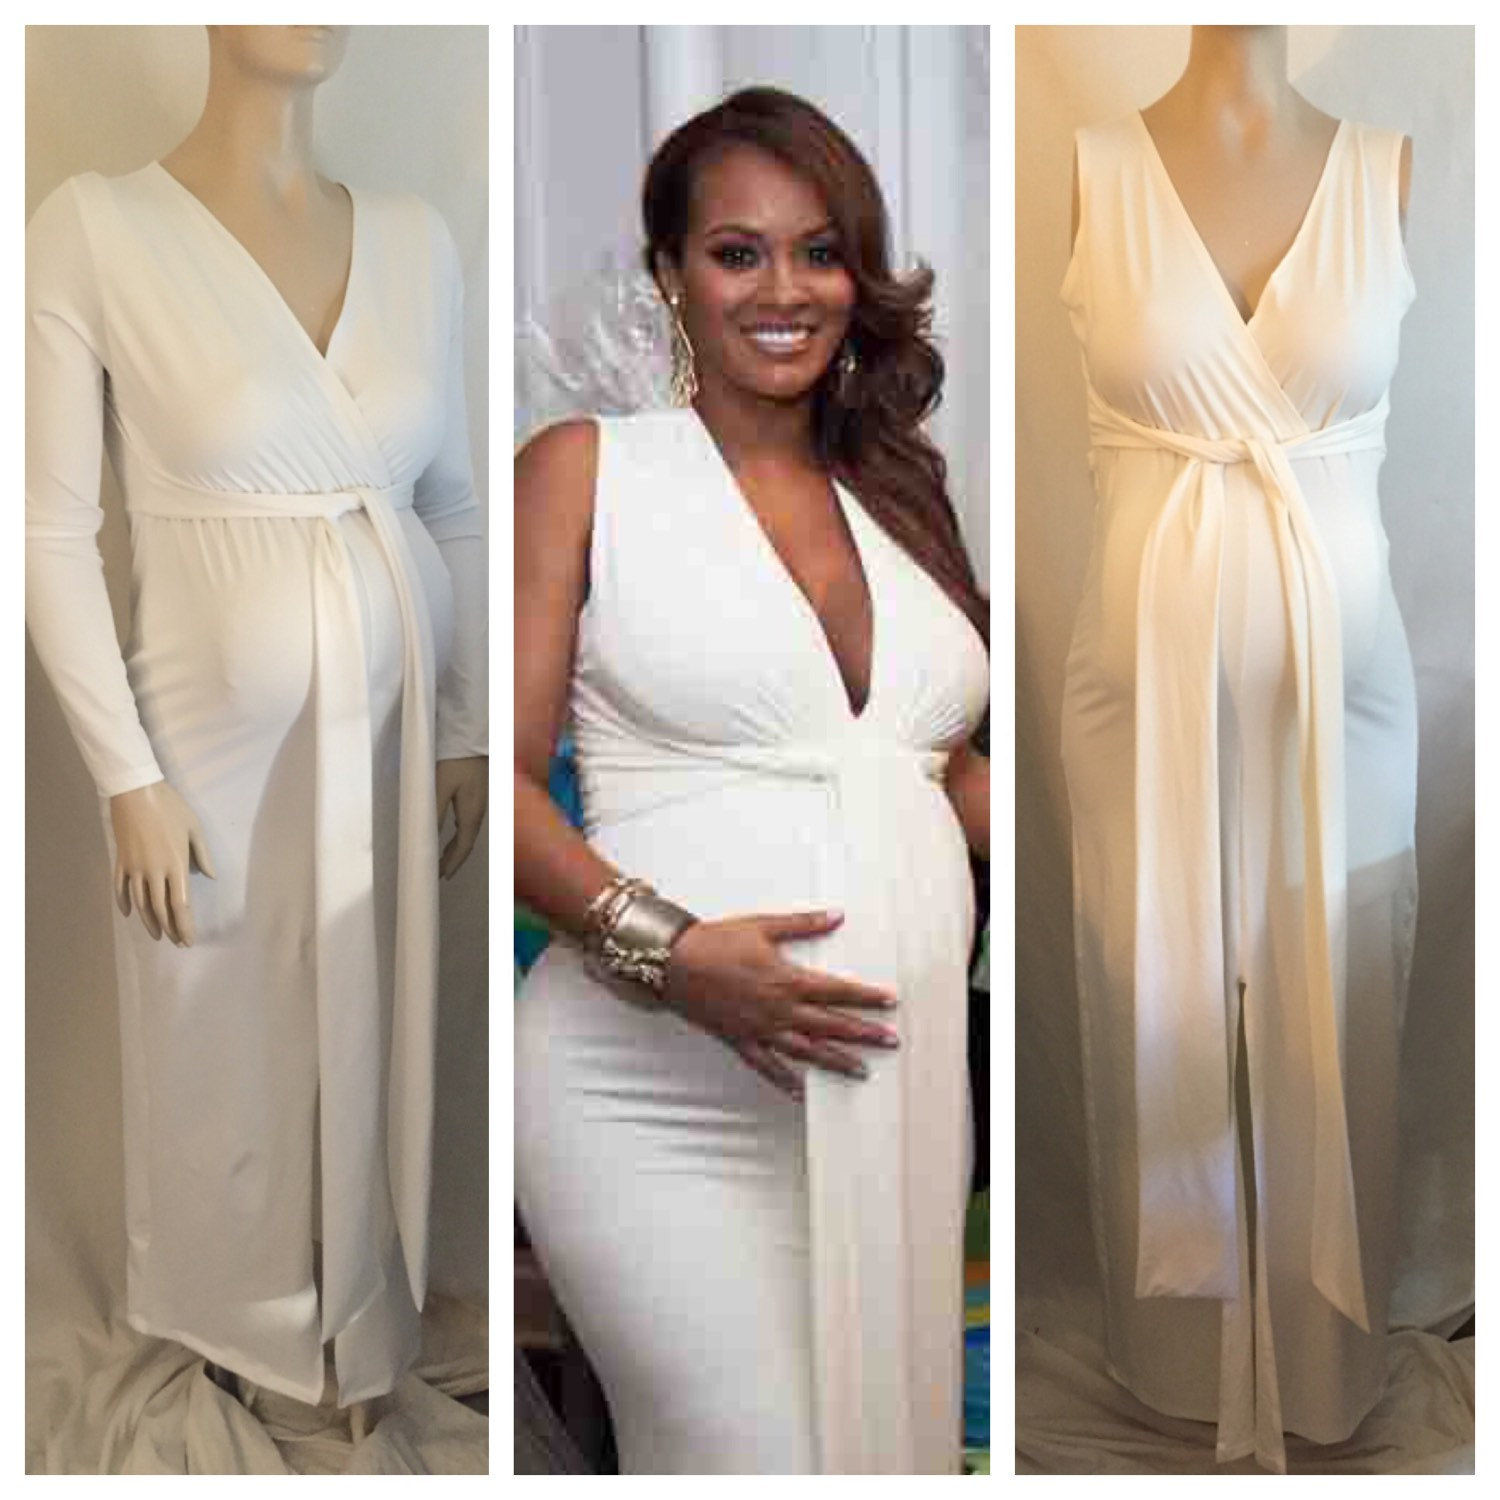 White Plus Size Maternity Dress For Baby Shower - Photo ...